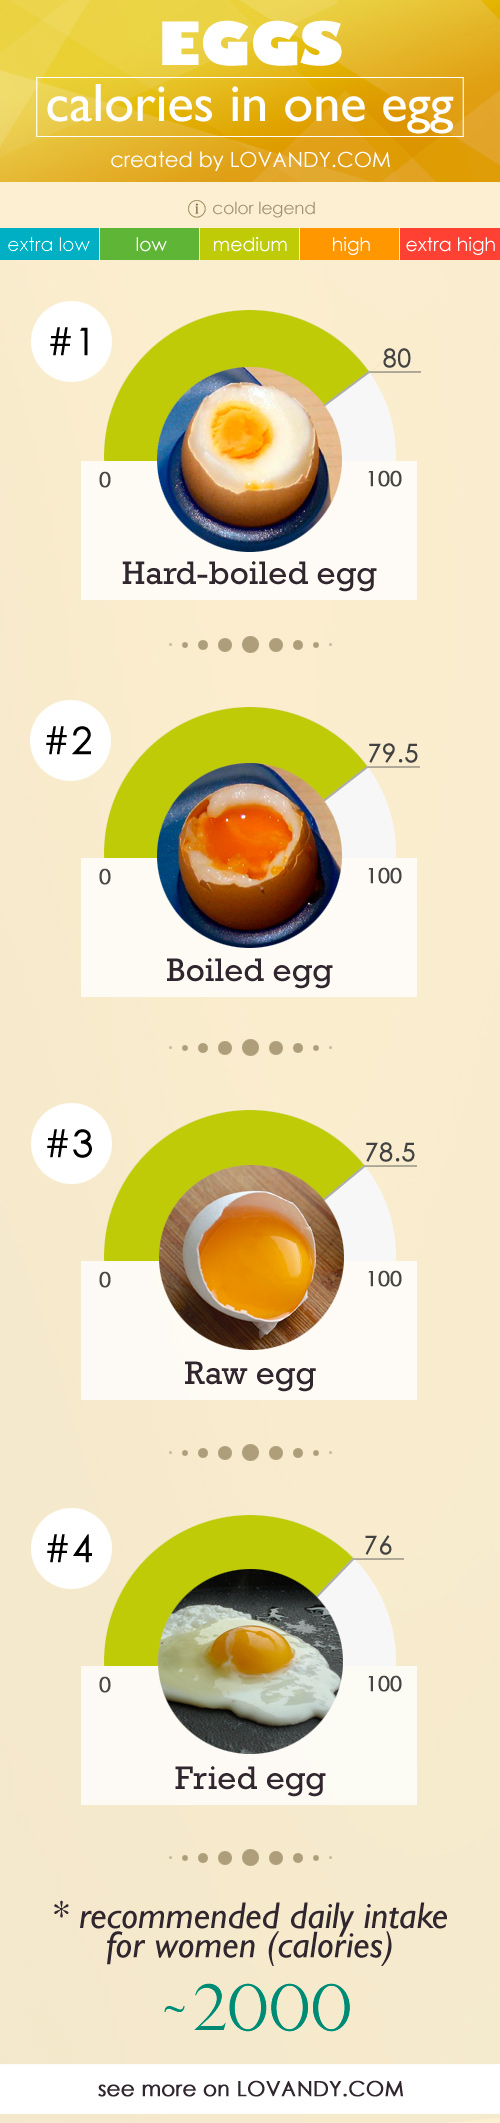 How much protein is in one egg 3